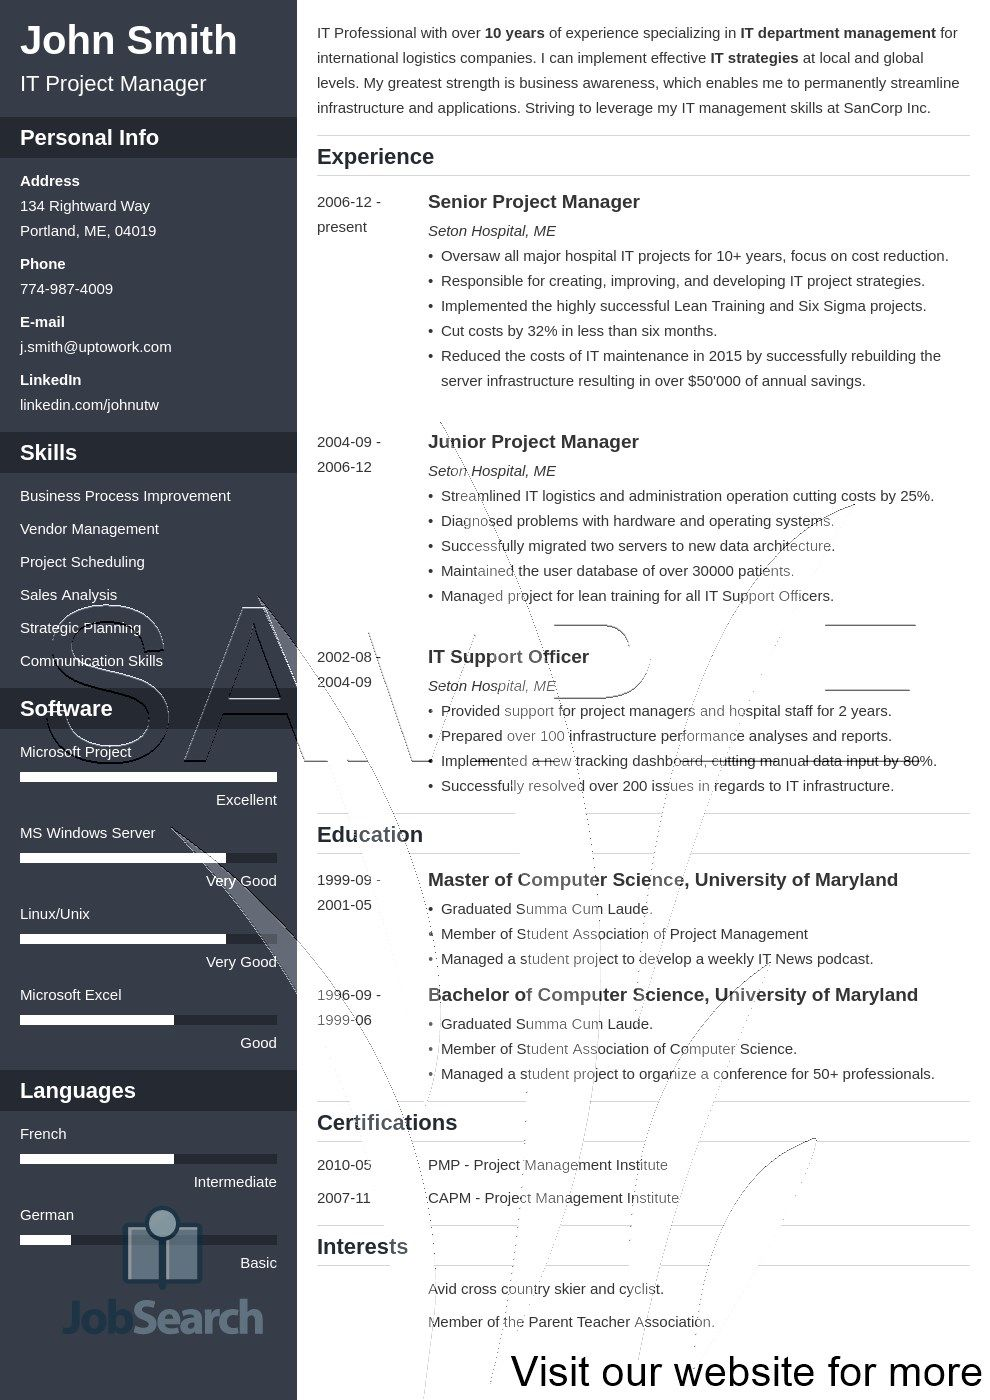 resume template, resume template professional, resume